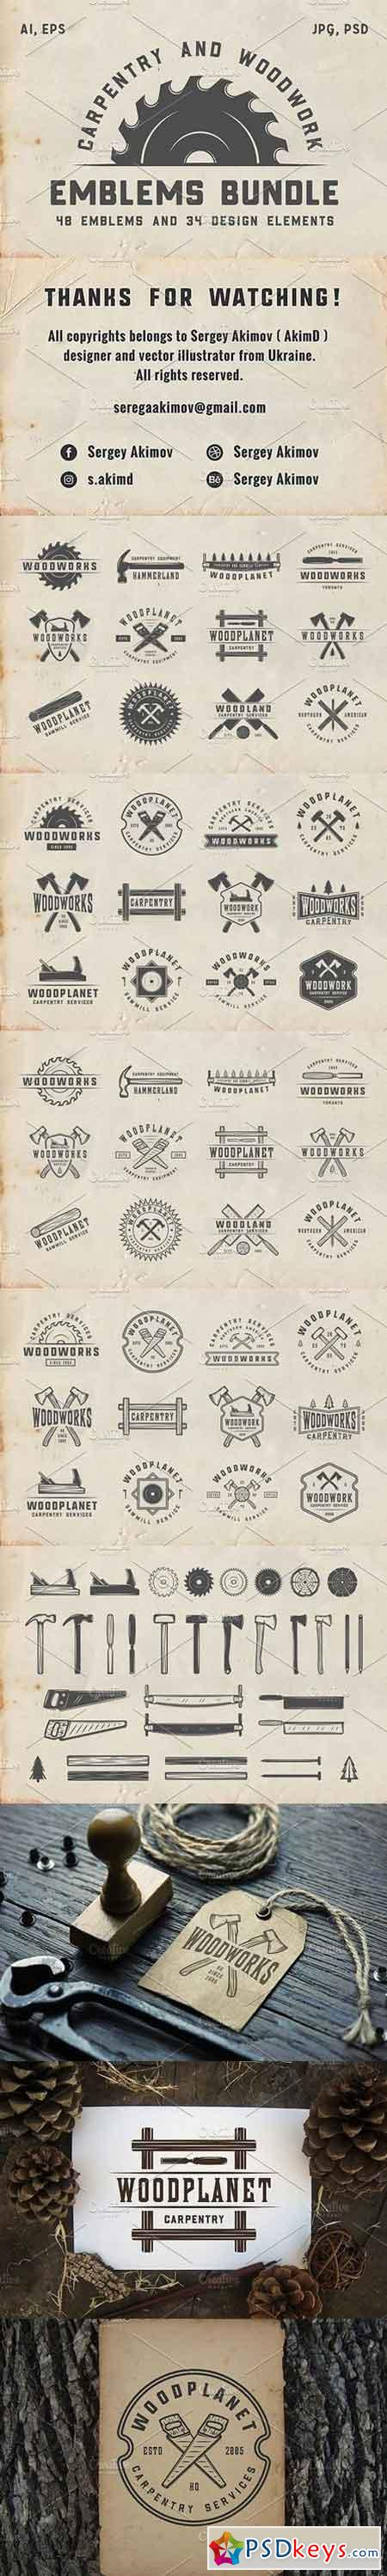 Vintage Carpentry Emblems part 2 124969